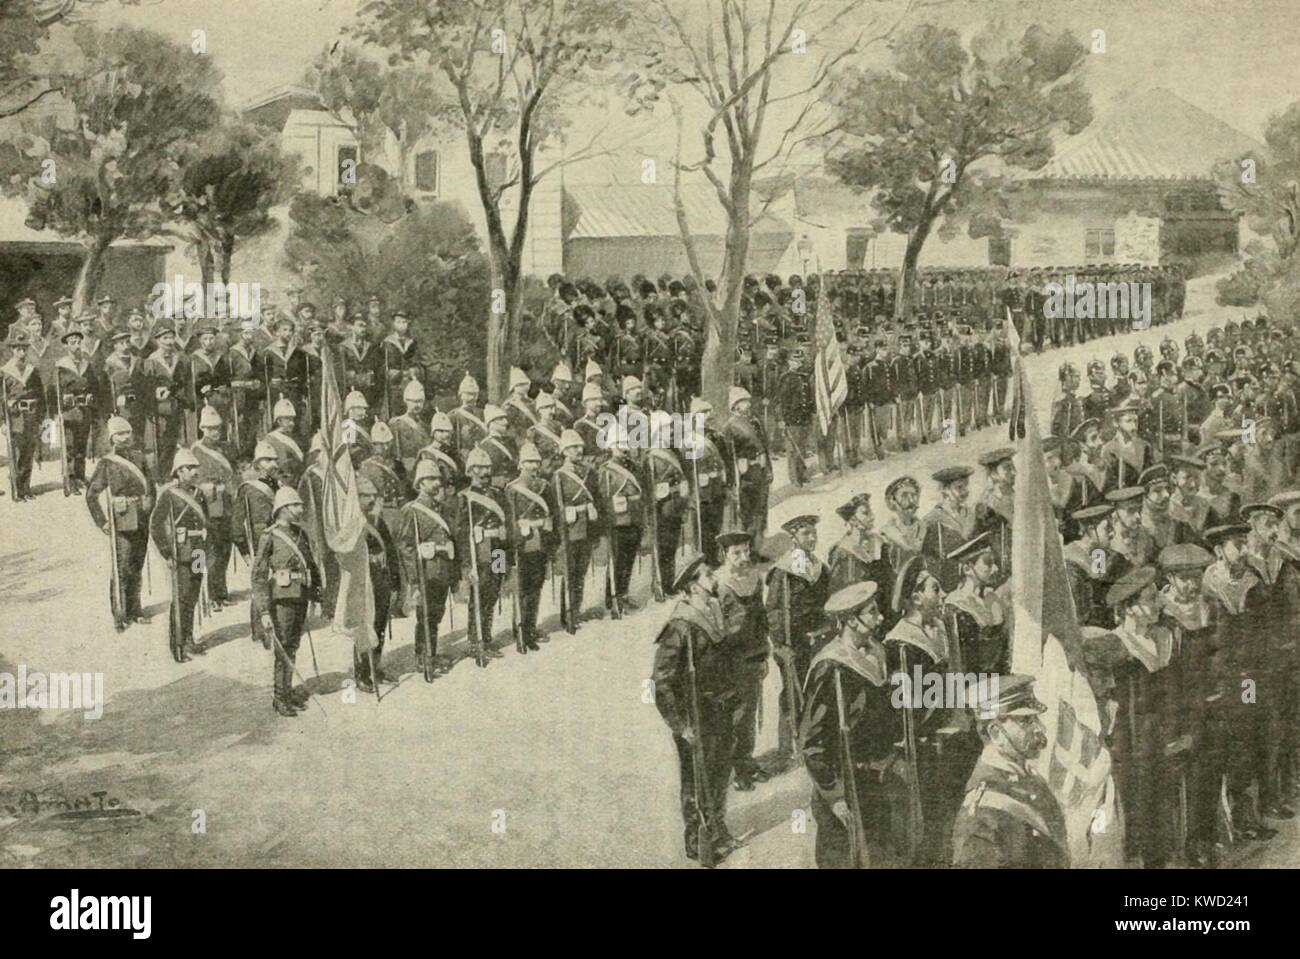 Muster of the 409 foreign legation guards in Beijing during the Boxer Rebellion, June 1900. On May 28, 1900, the - Stock Image